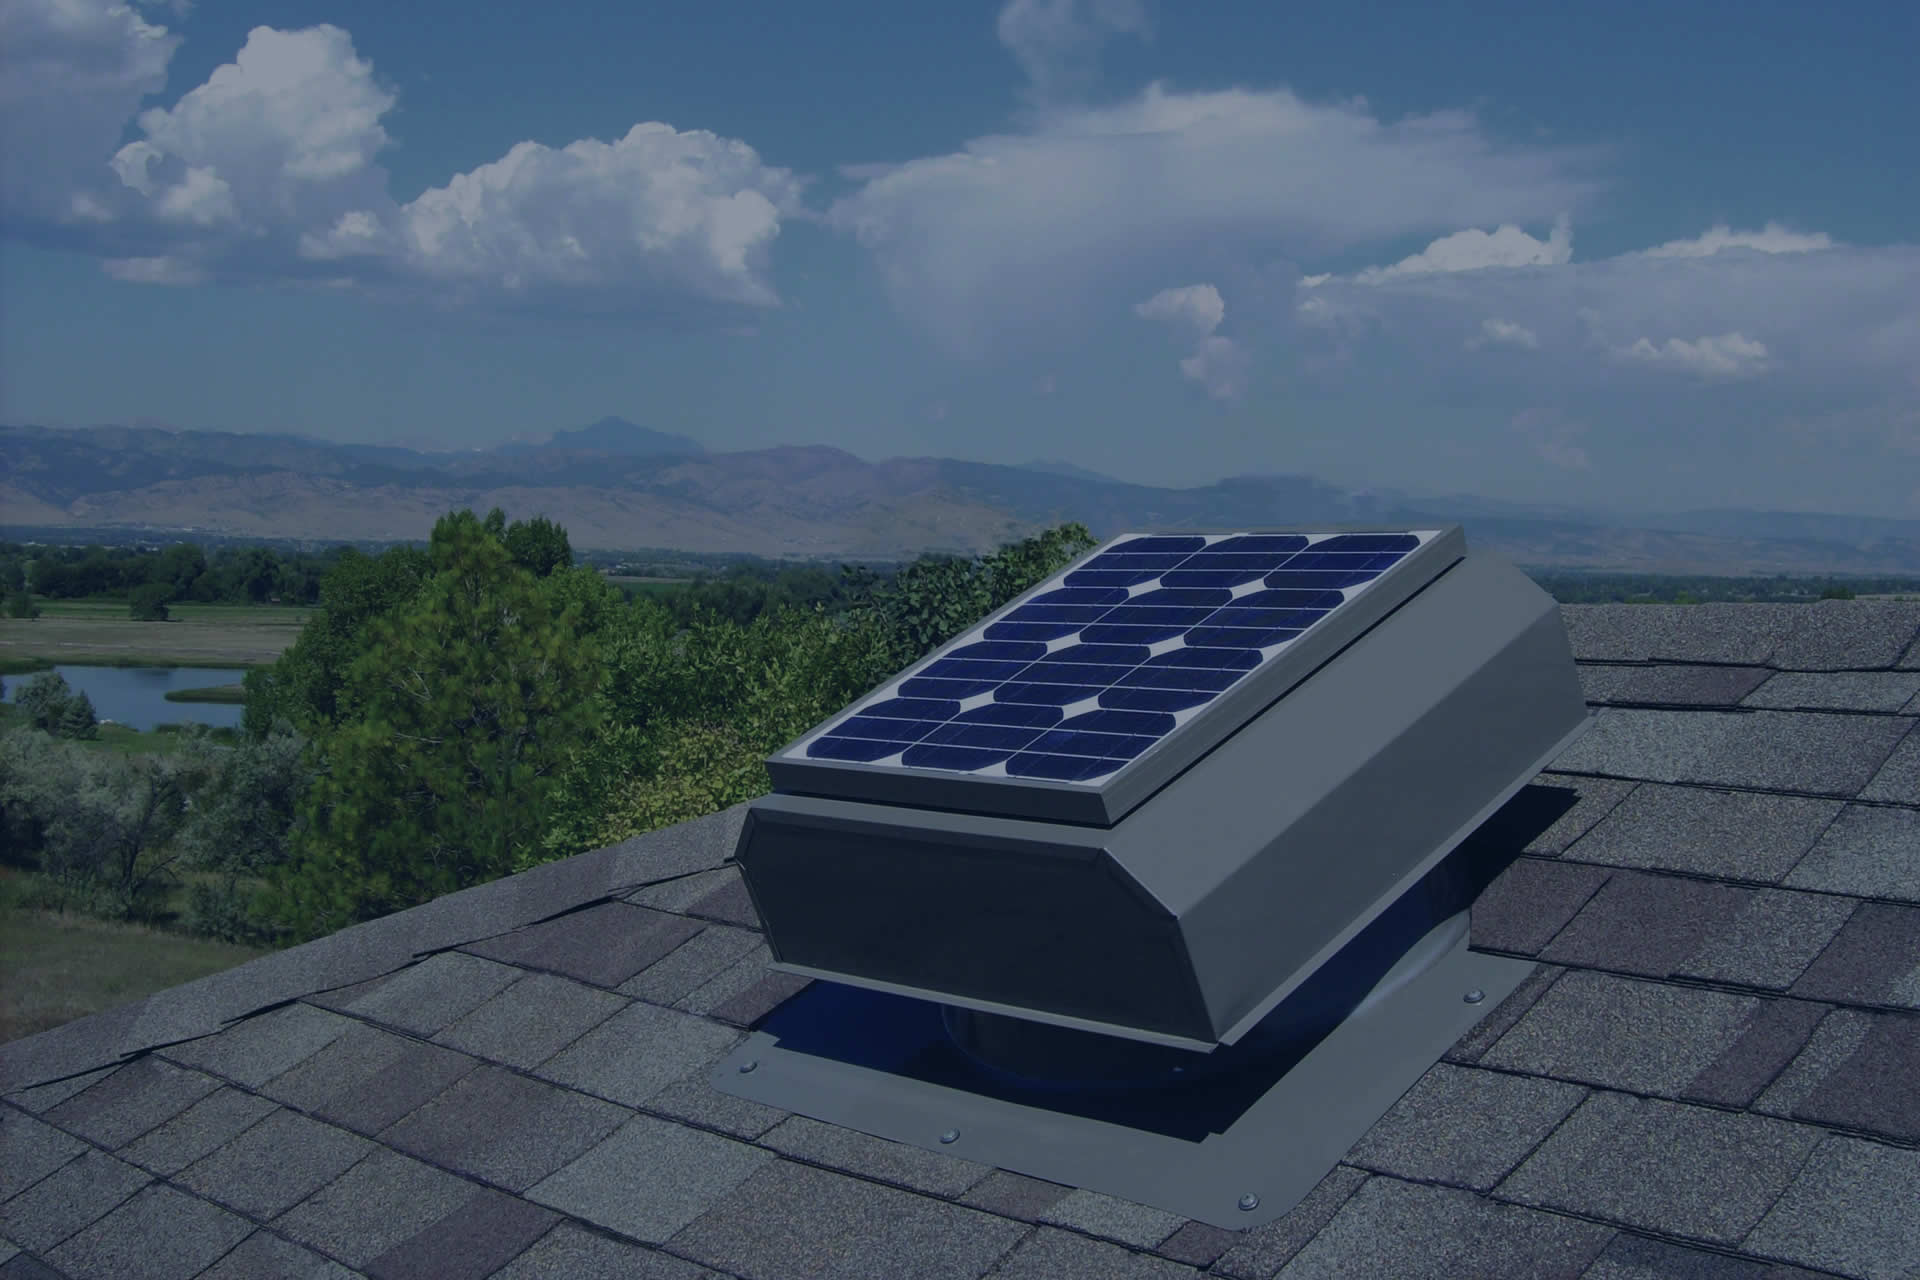 An Attic Breeze solar attic fan has the highest performance of any solar powered exhaust fan on the market.